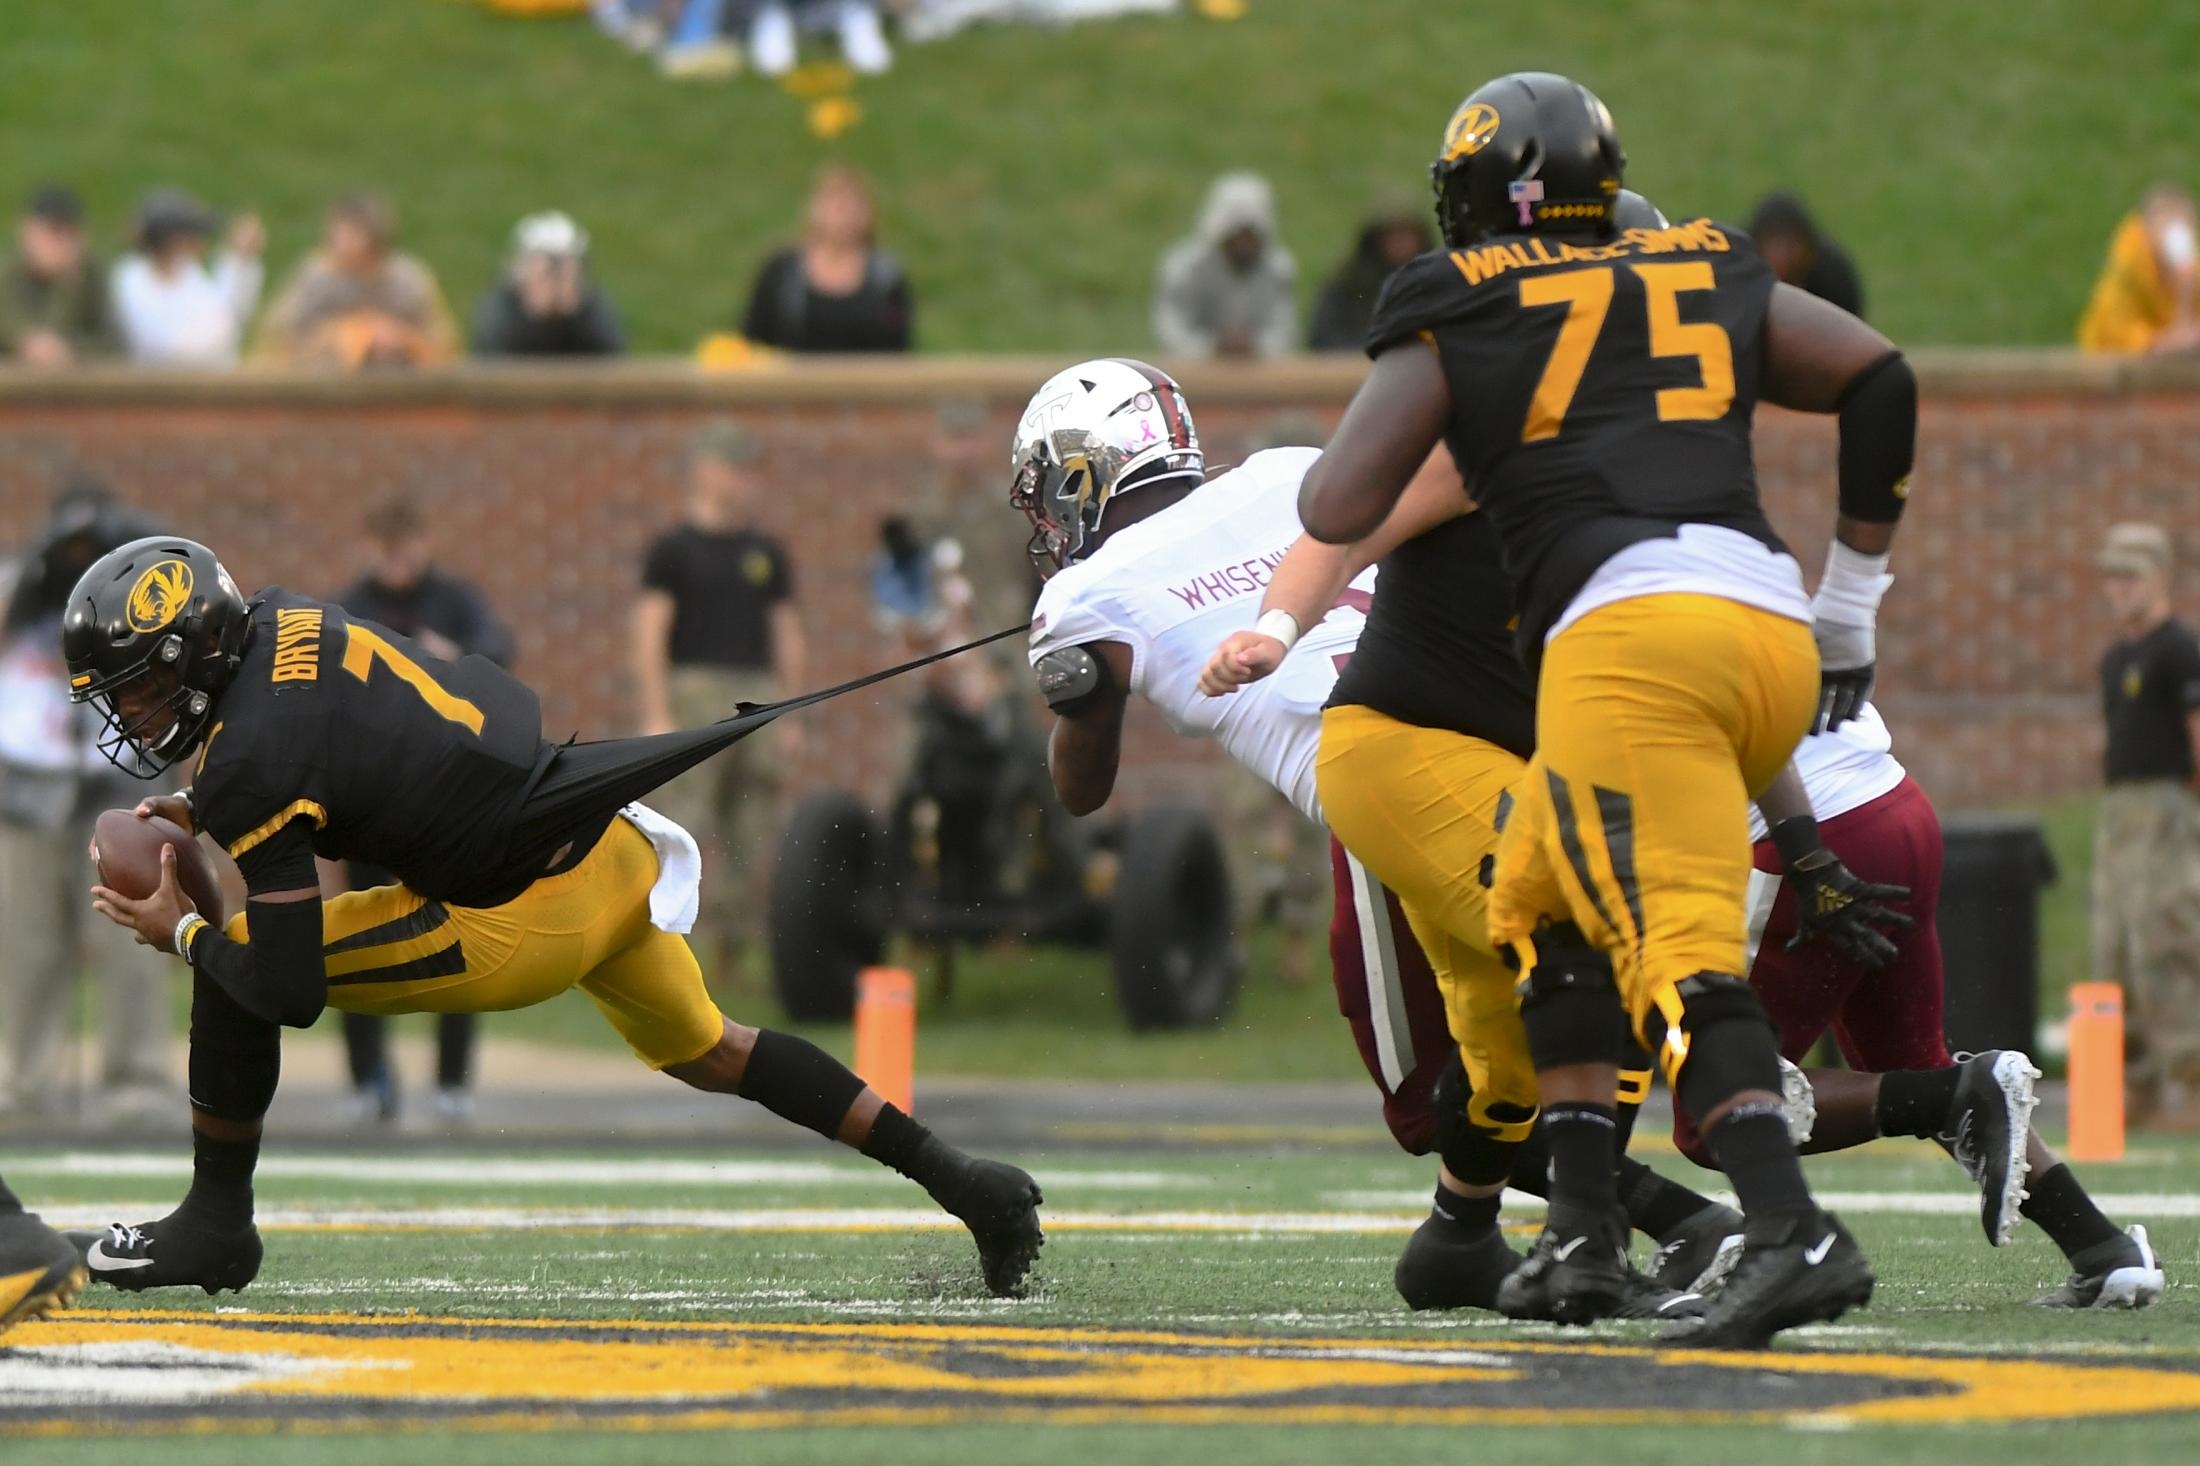 Missouri quarterback Kelly Bryant dodges a sack by a Troy defensive player on Farout Field at Memorial Stadium on Saturday, October 05, 2019.